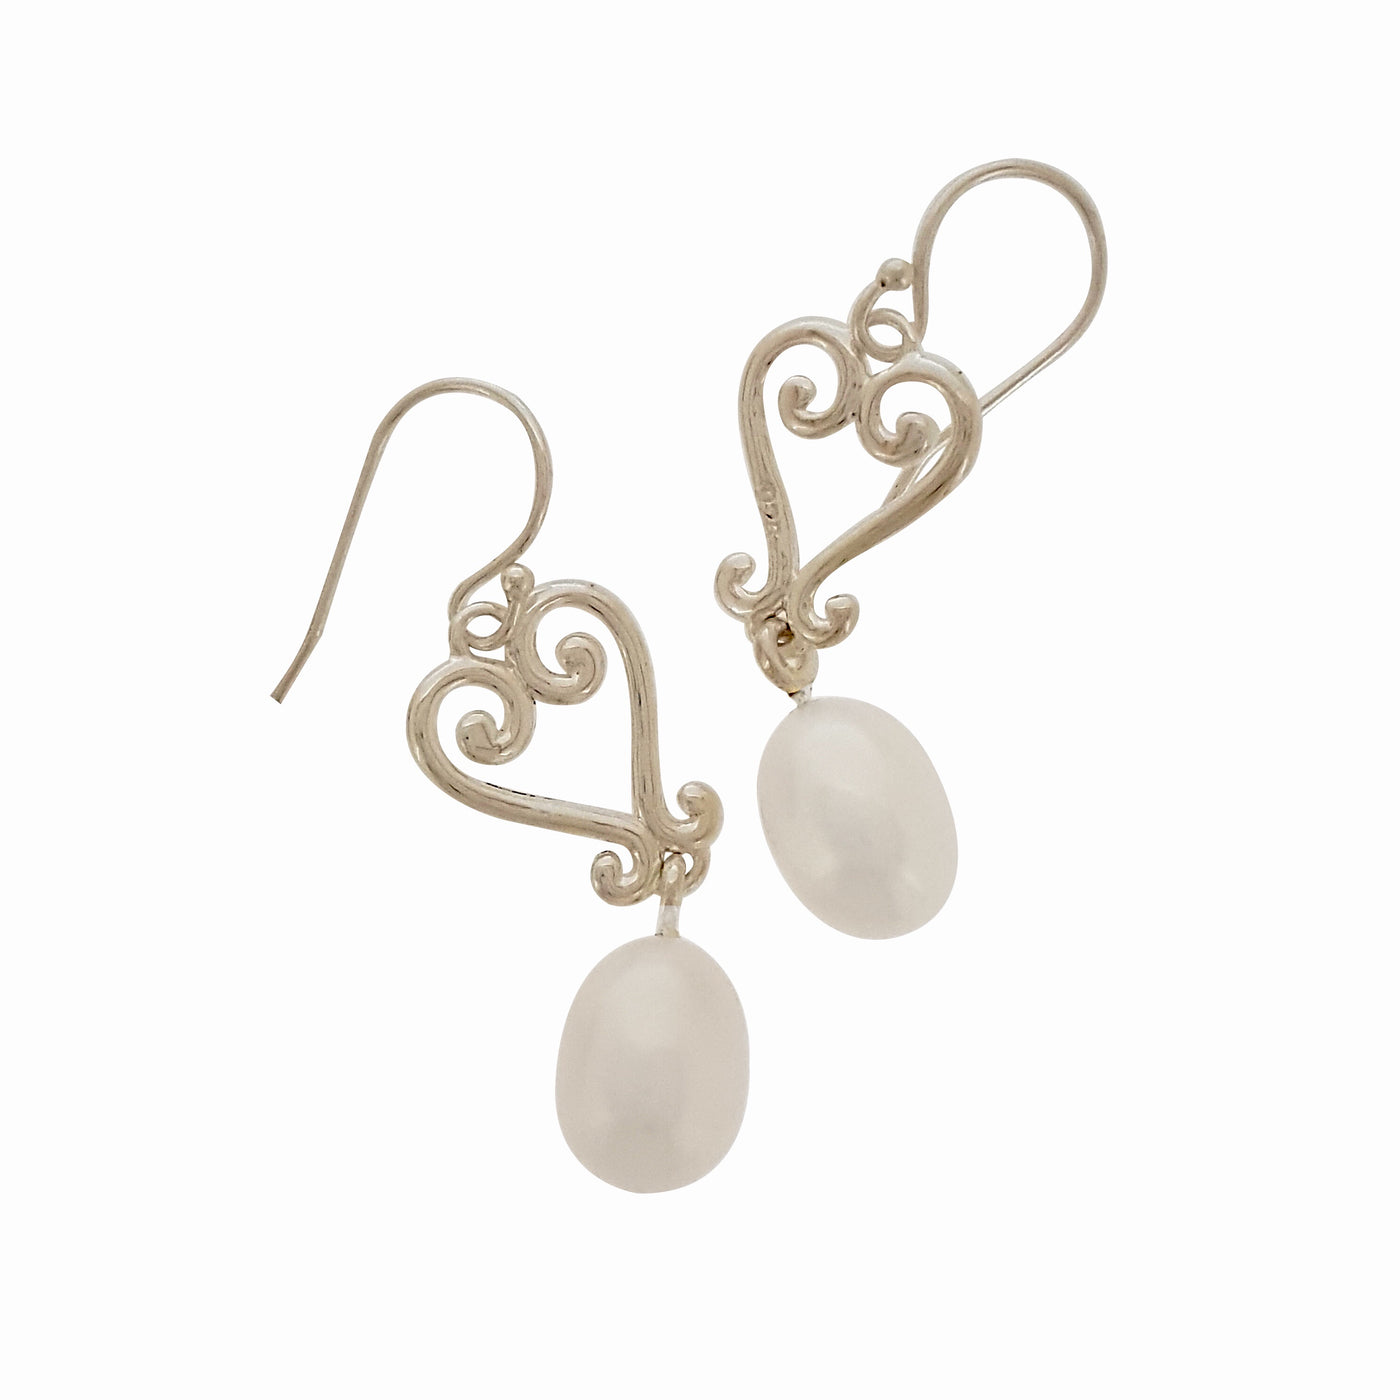 Pearl Earrings 'Romance Heart' - The Courthouse Collection